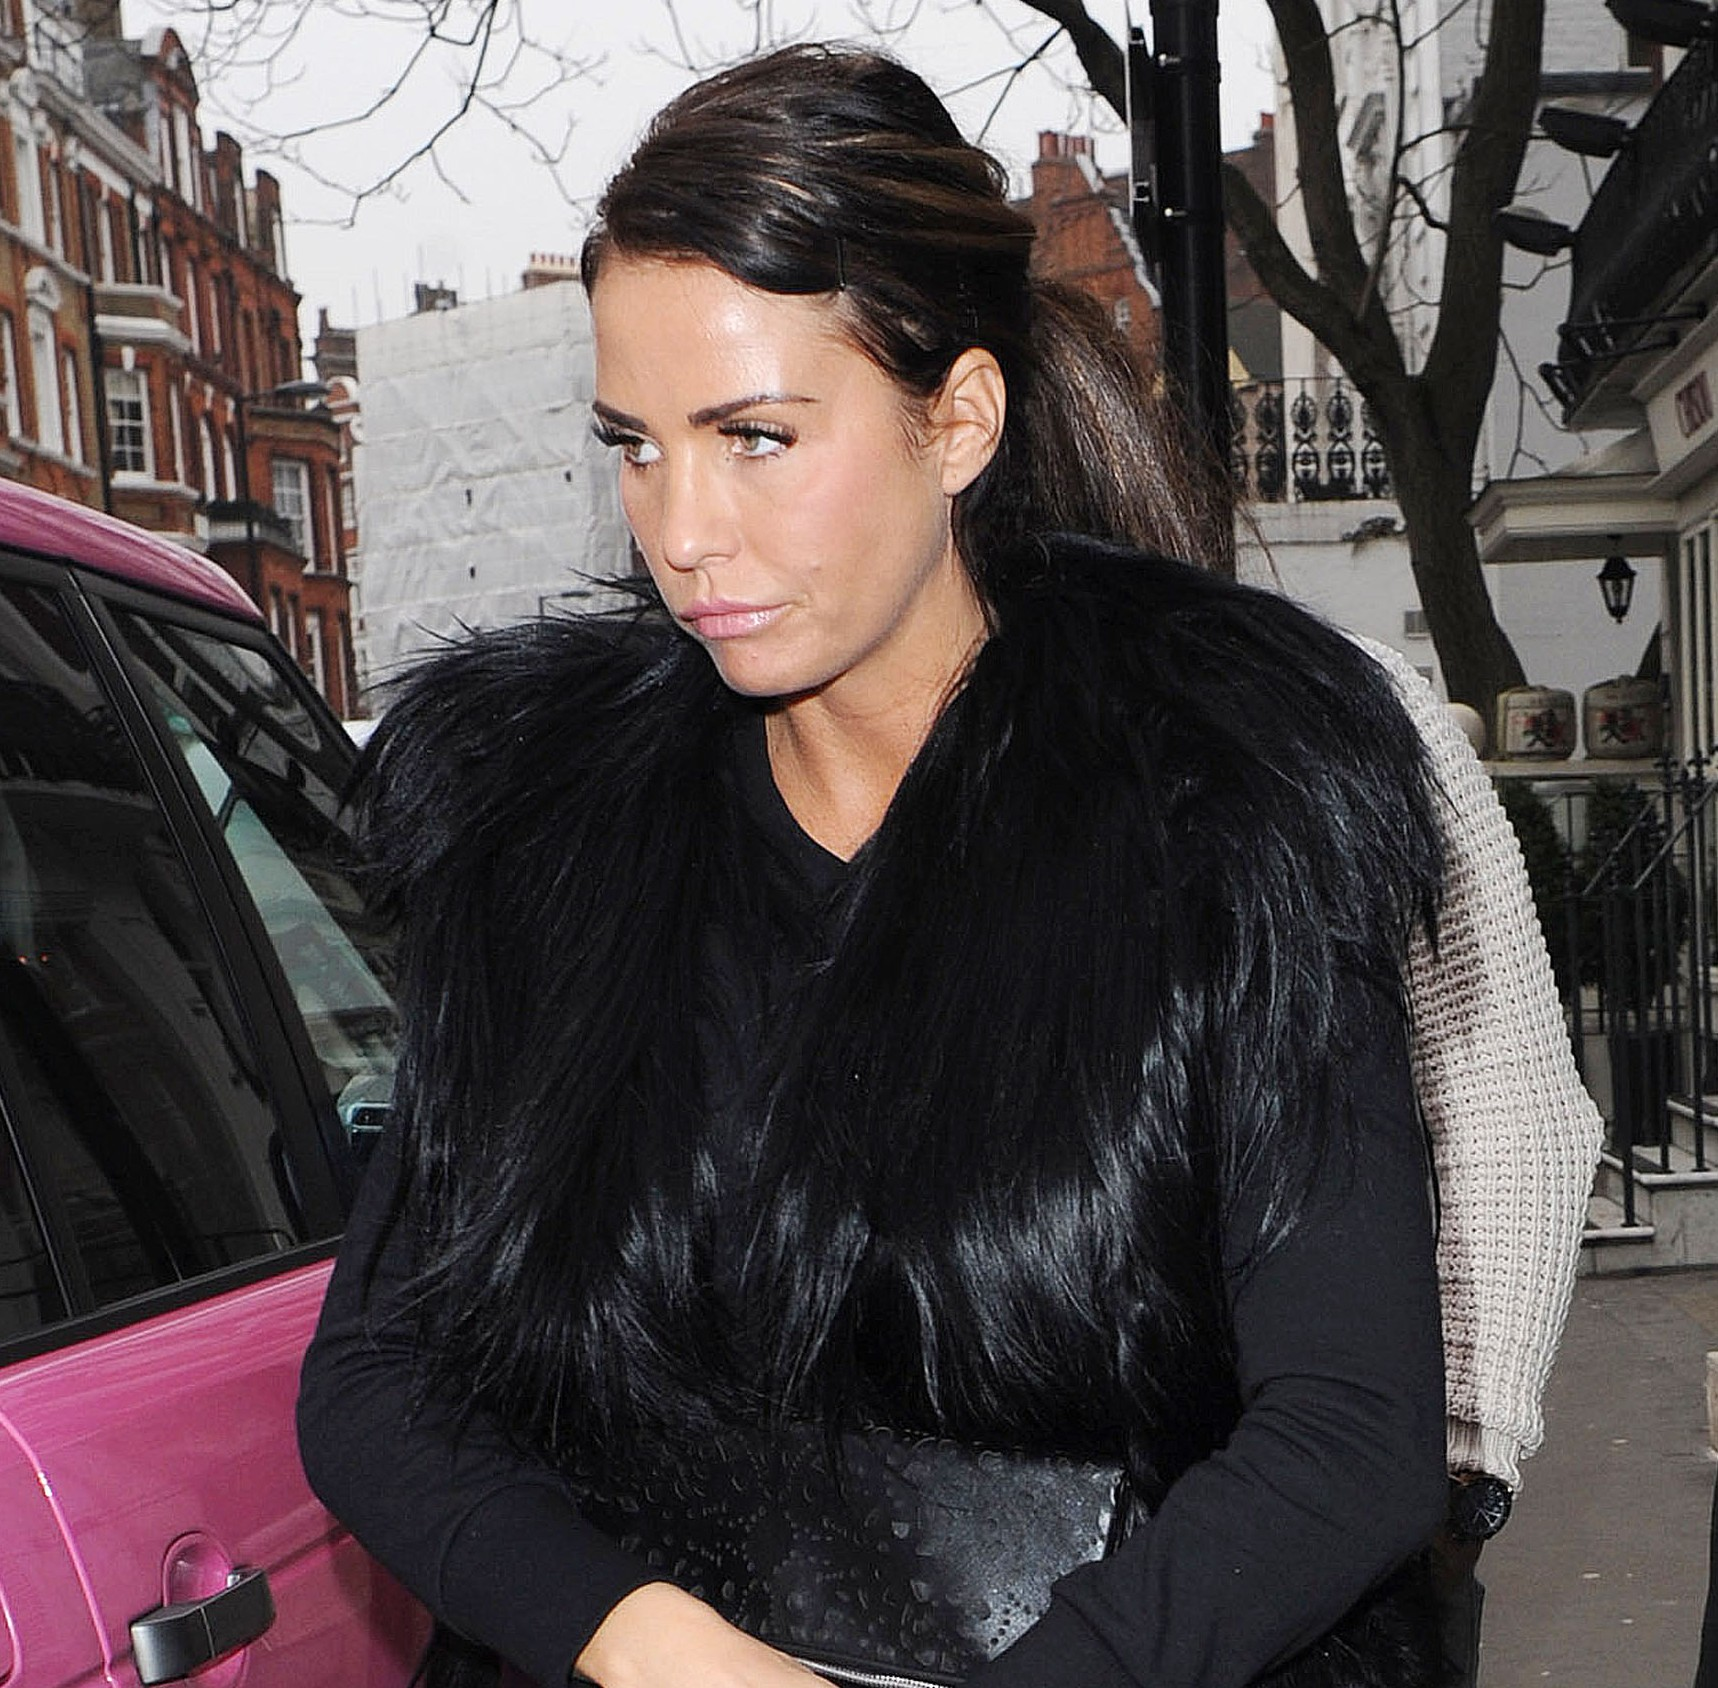 Katie Price calls the police on ex-husband Alex Reid accusing him of stealing her mobile phone